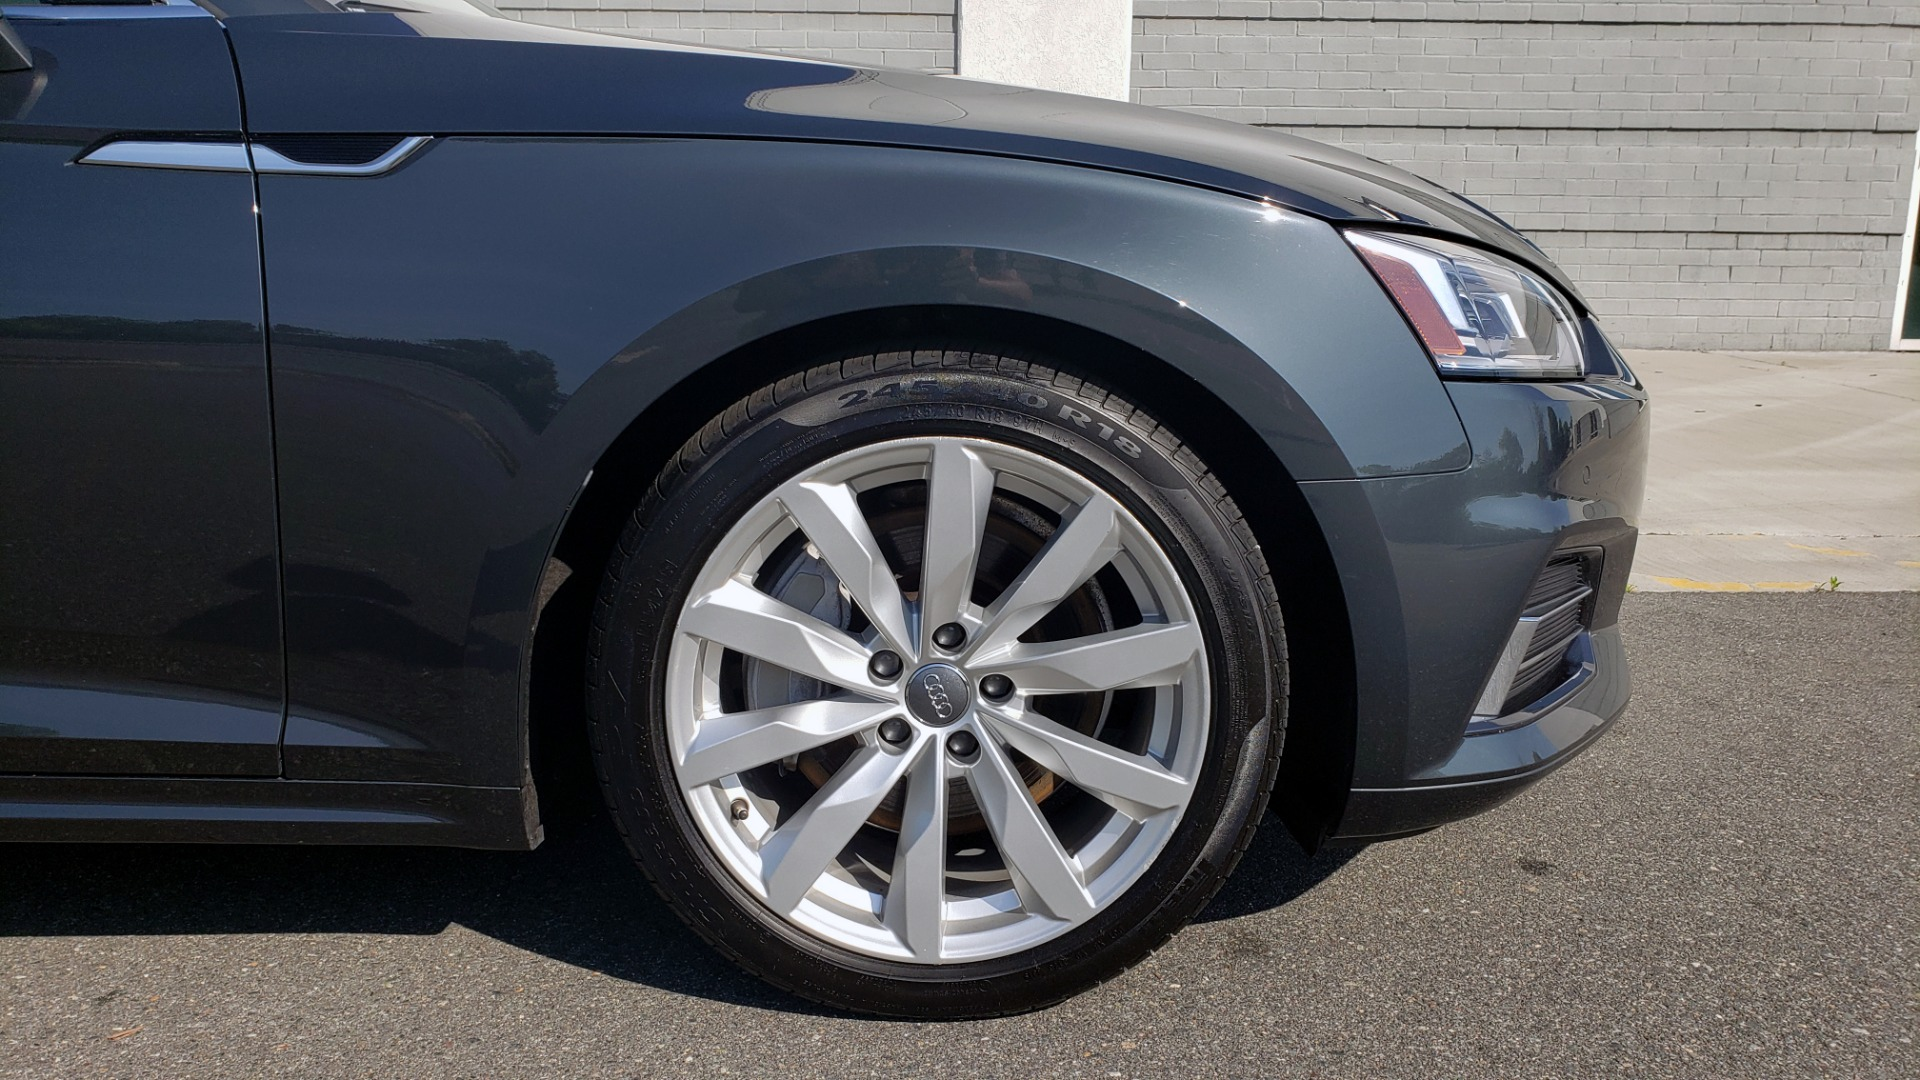 Used 2018 Audi A5 SPORTBACK PREMIUM PLUS 2.0T / AWD / NAV / B&O SND / SUNROOF / REARVIEW for sale Sold at Formula Imports in Charlotte NC 28227 16